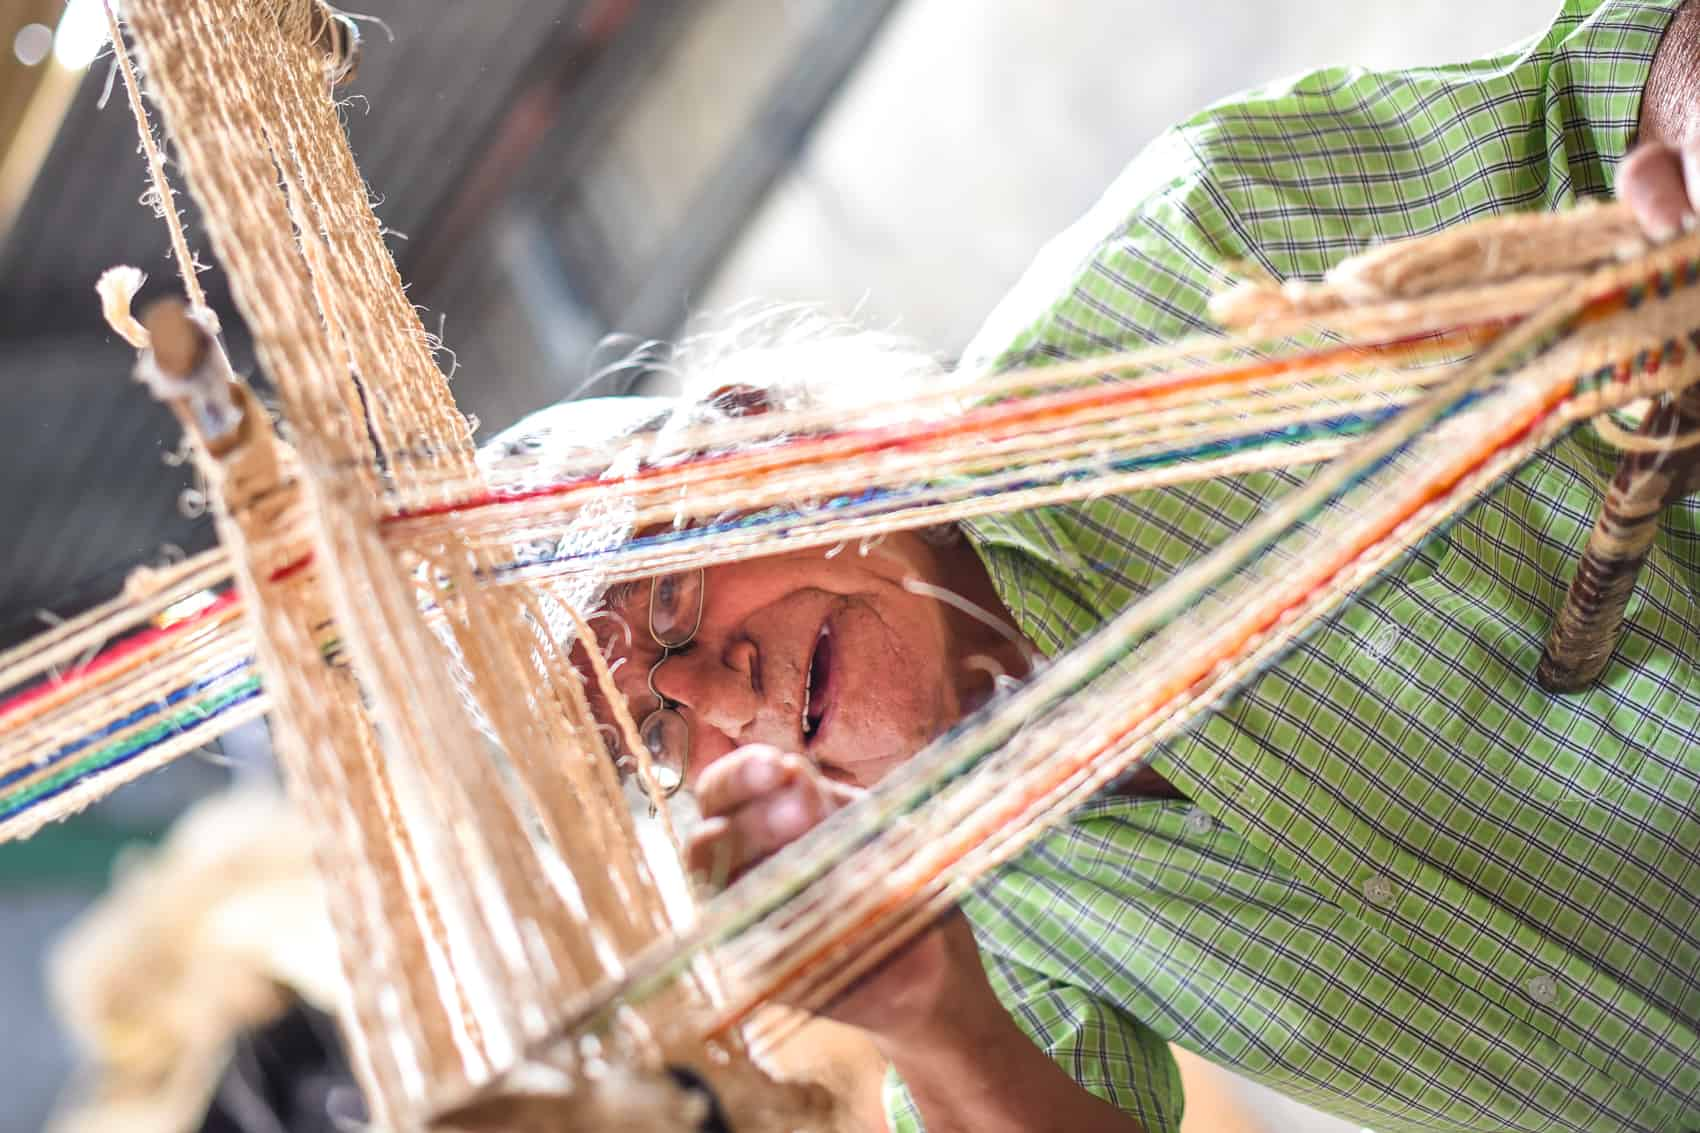 Juan Olivado Camacho, known as Don Tina, 74, explains how he uses a loom and cabuya thread to make products.